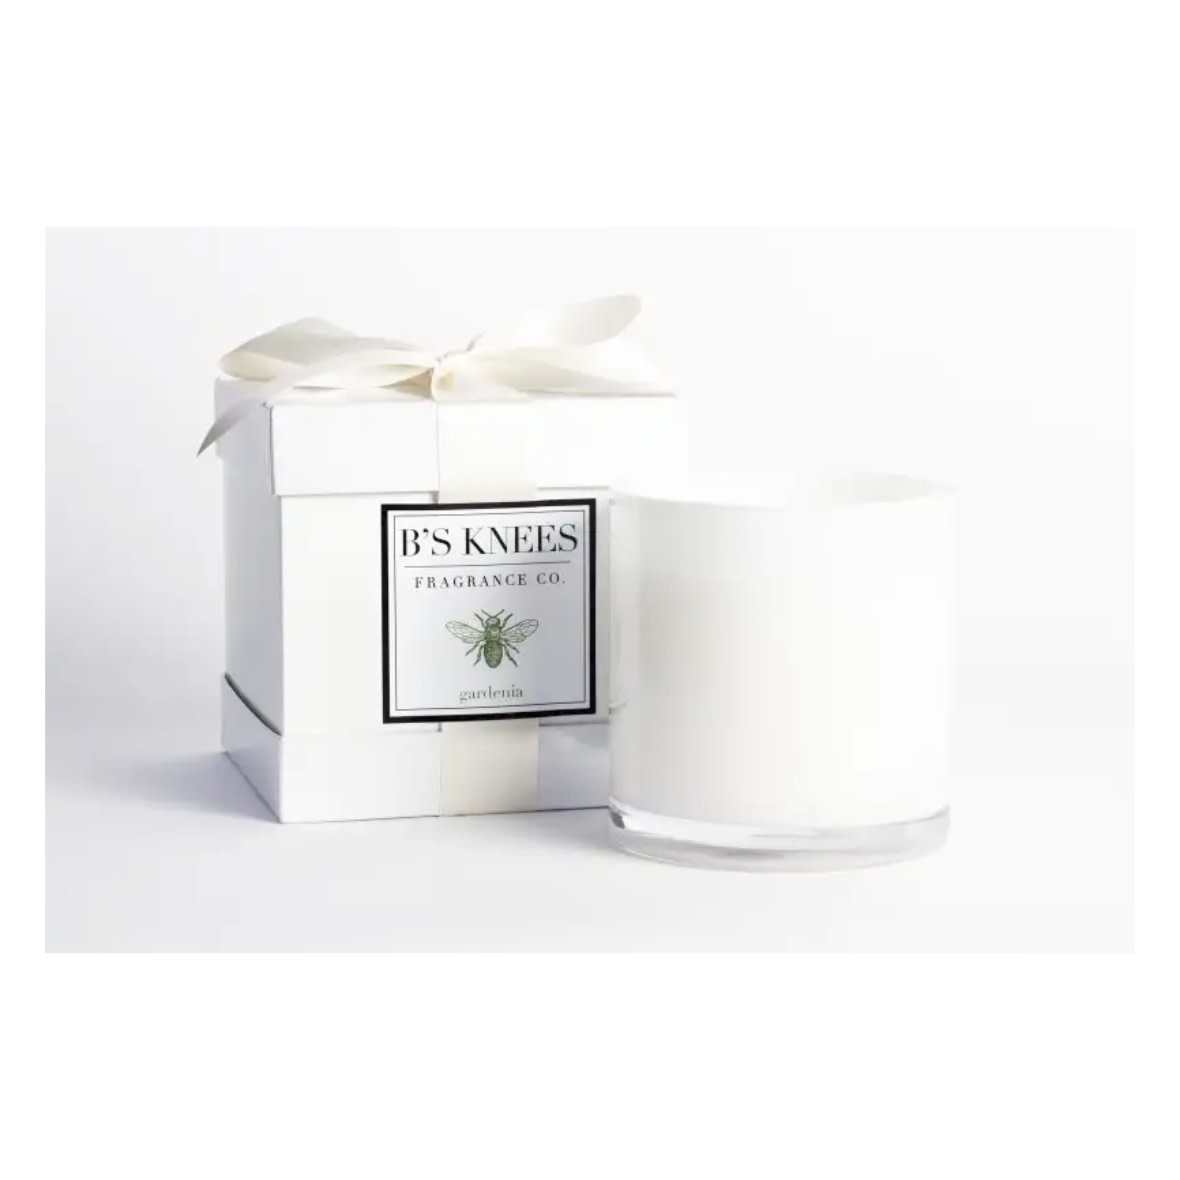 B's Knees Fragrance Co. B's Knees Gardenia 3 Wick White Candle